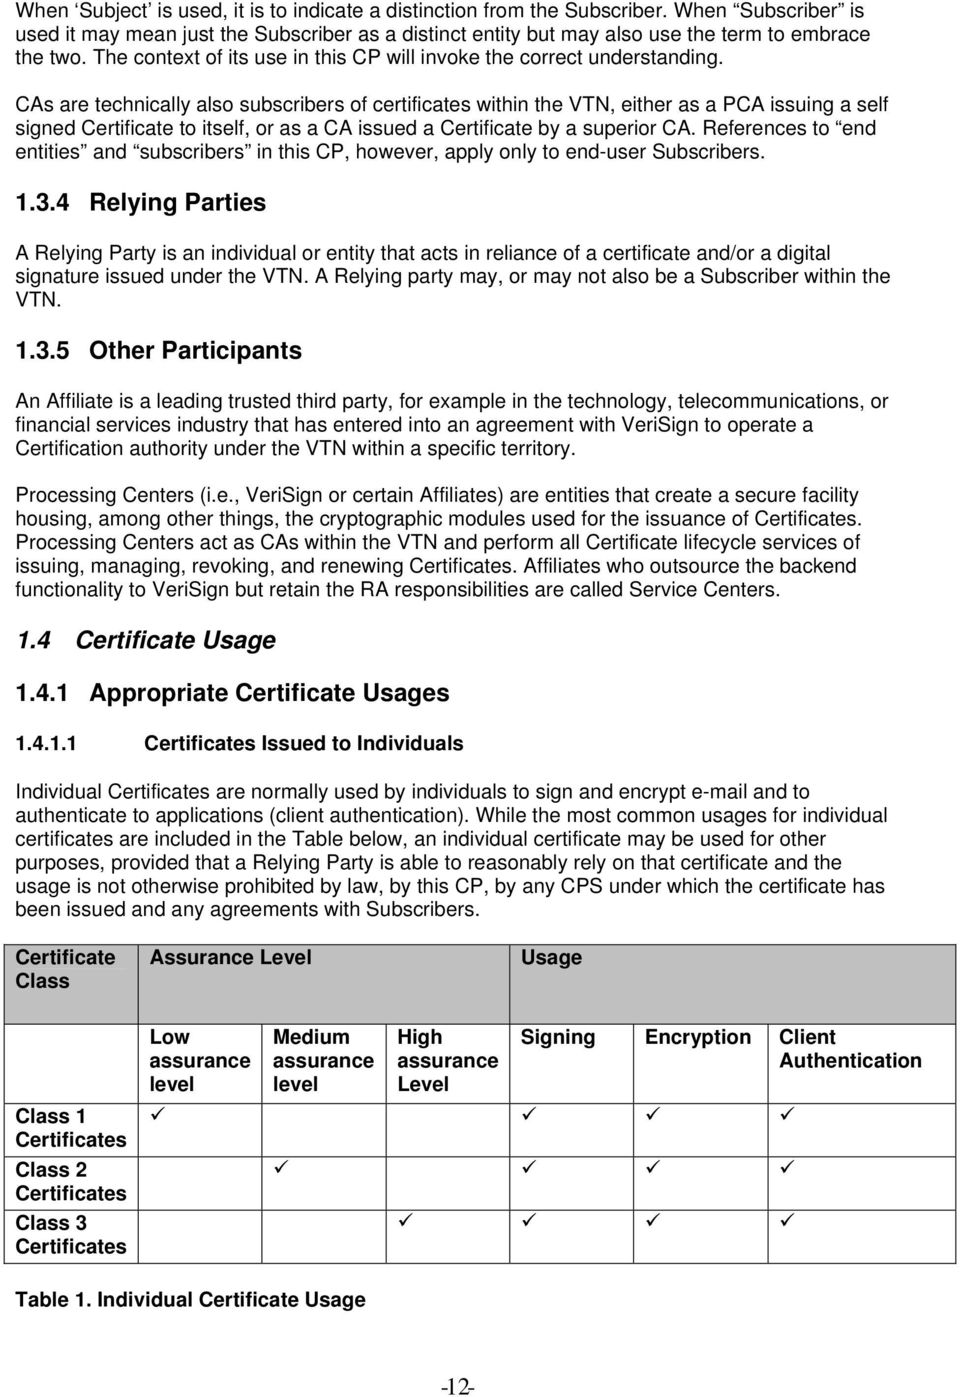 CAs are technically also subscribers of certificates within the VTN, either as a PCA issuing a self signed Certificate to itself, or as a CA issued a Certificate by a superior CA.